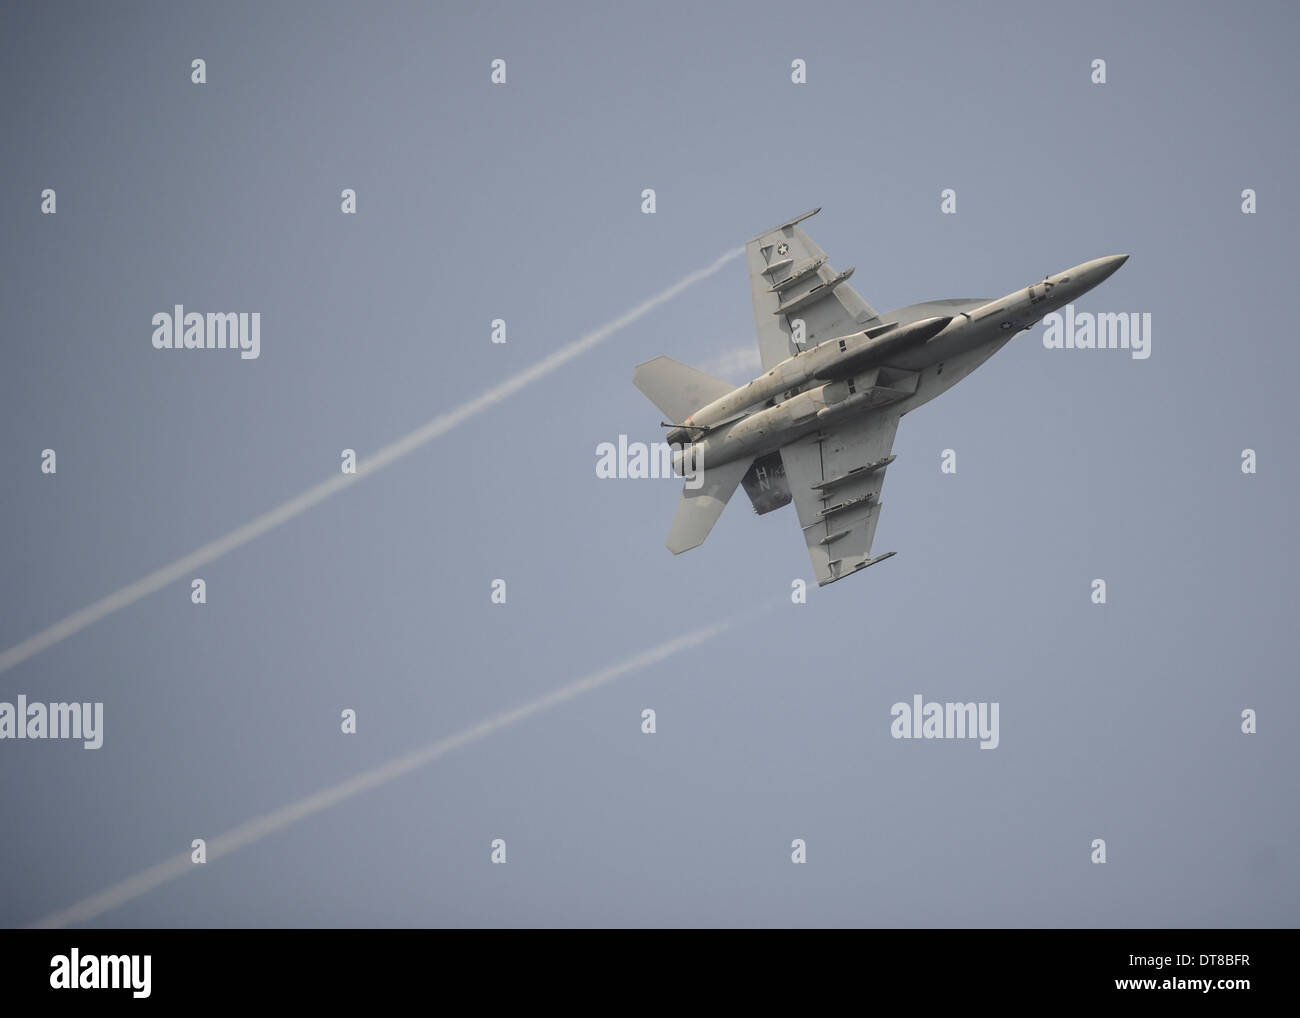 August 22, 2013 - An F/A-18E Super Hornet in flight over the Gulf of Oman. - Stock Image